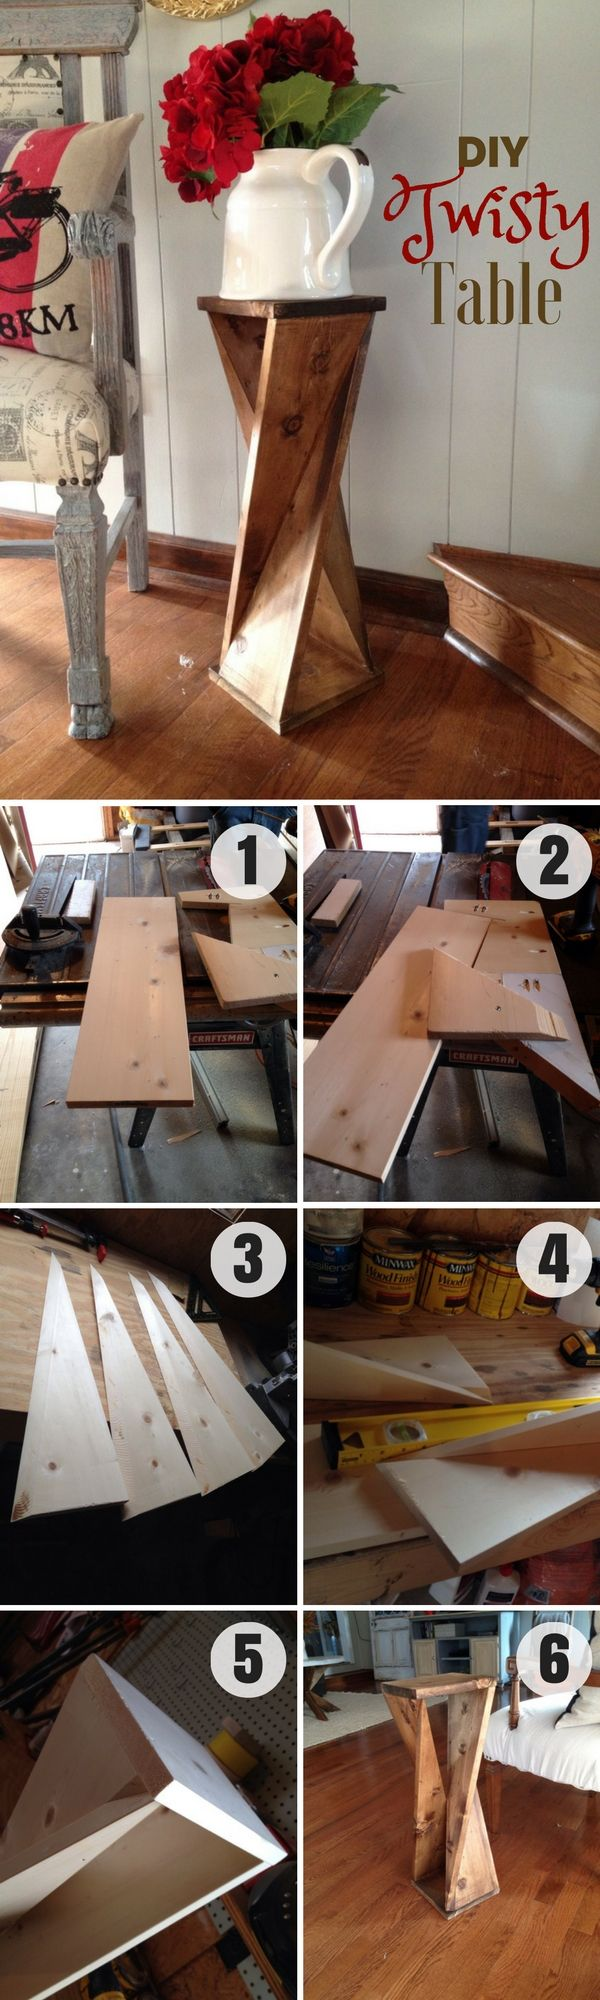 25+ best ideas about Wood projects on Pinterest | Diy ...